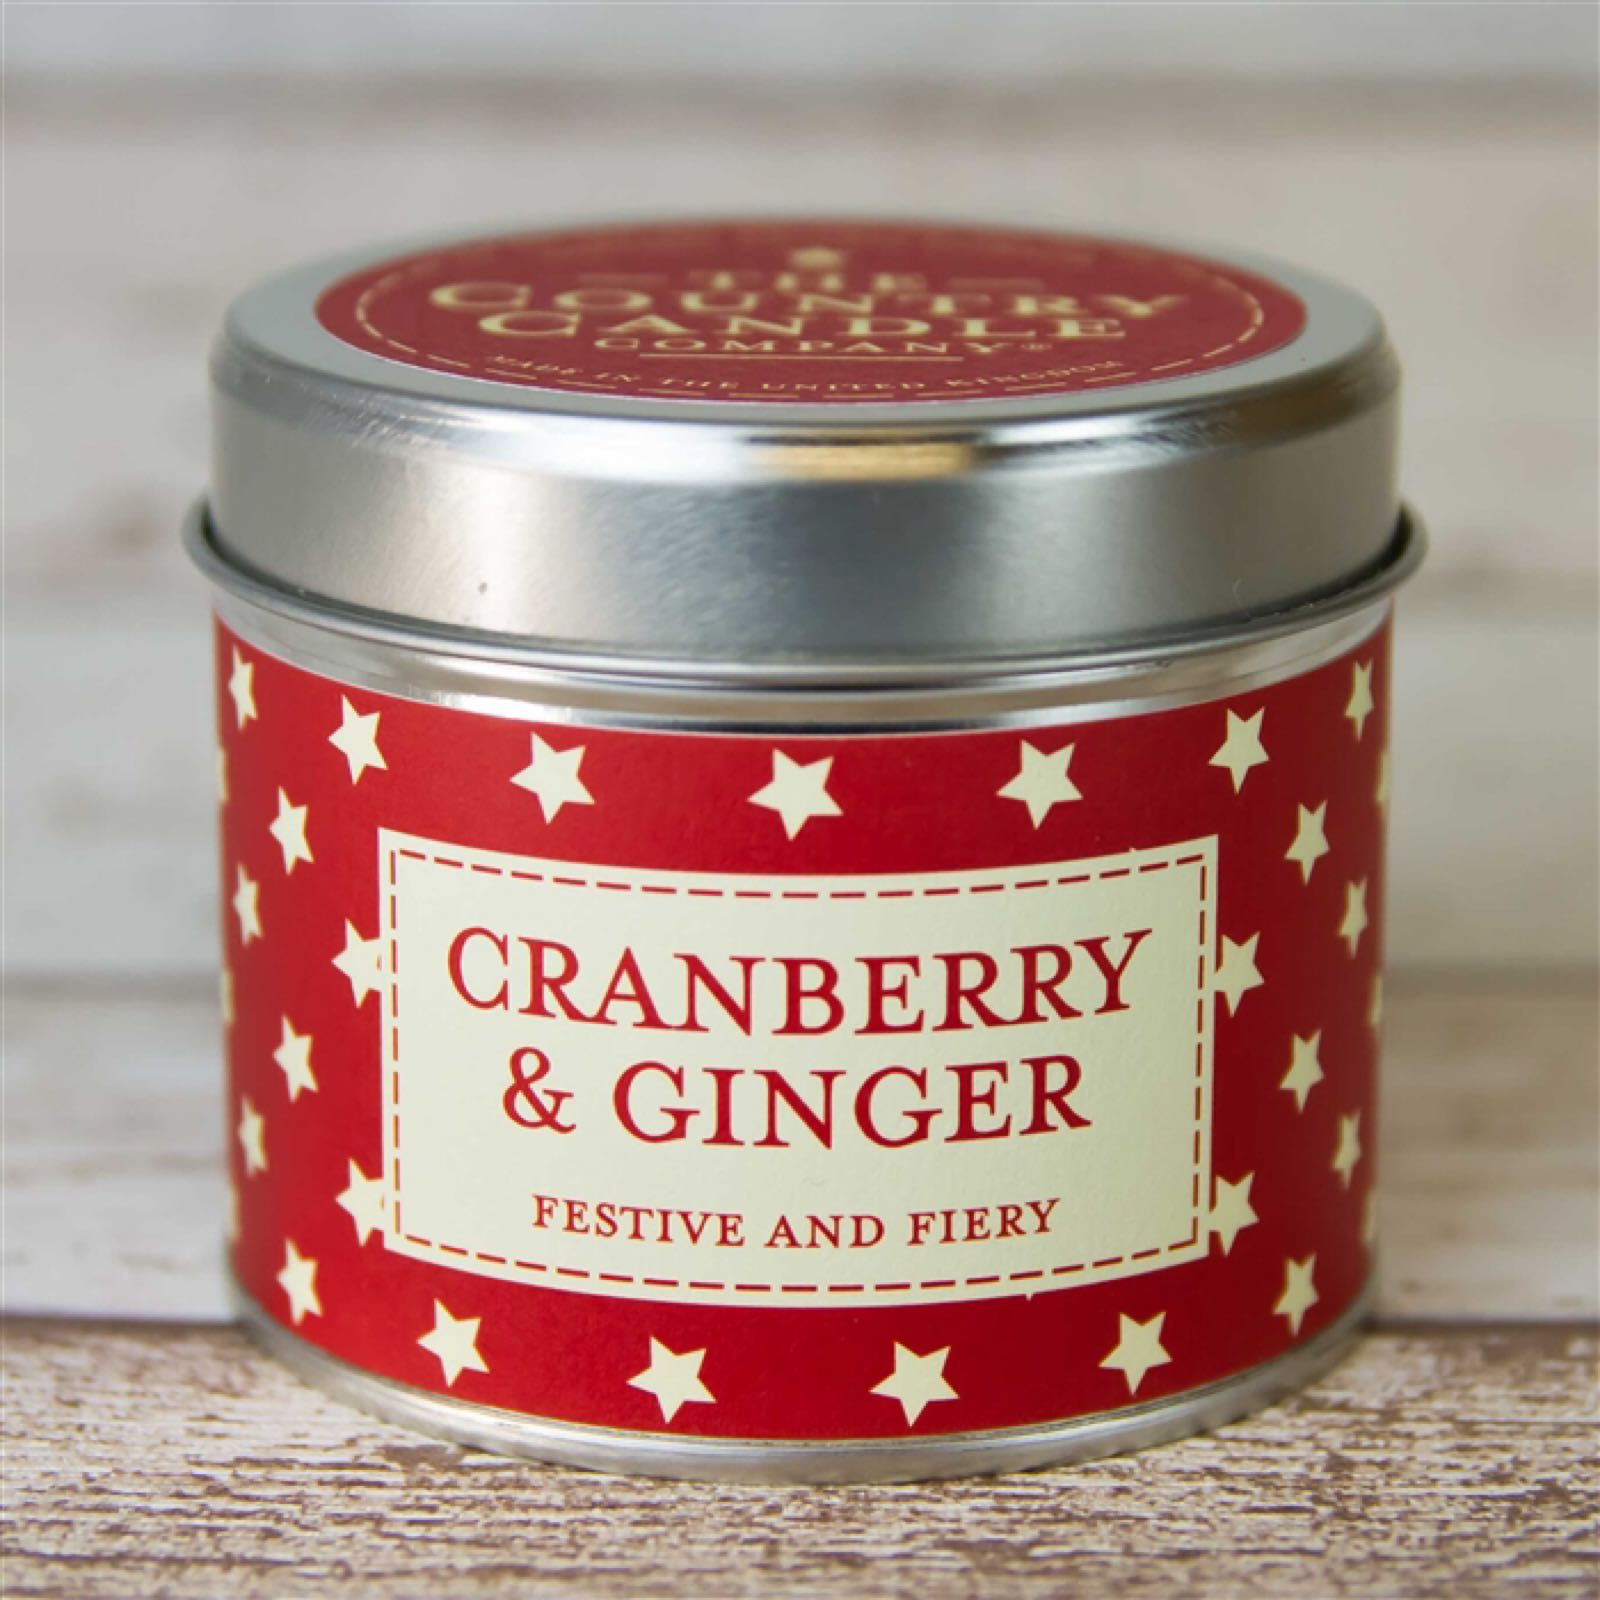 'Cranberry & Ginger' Candle in a Tin